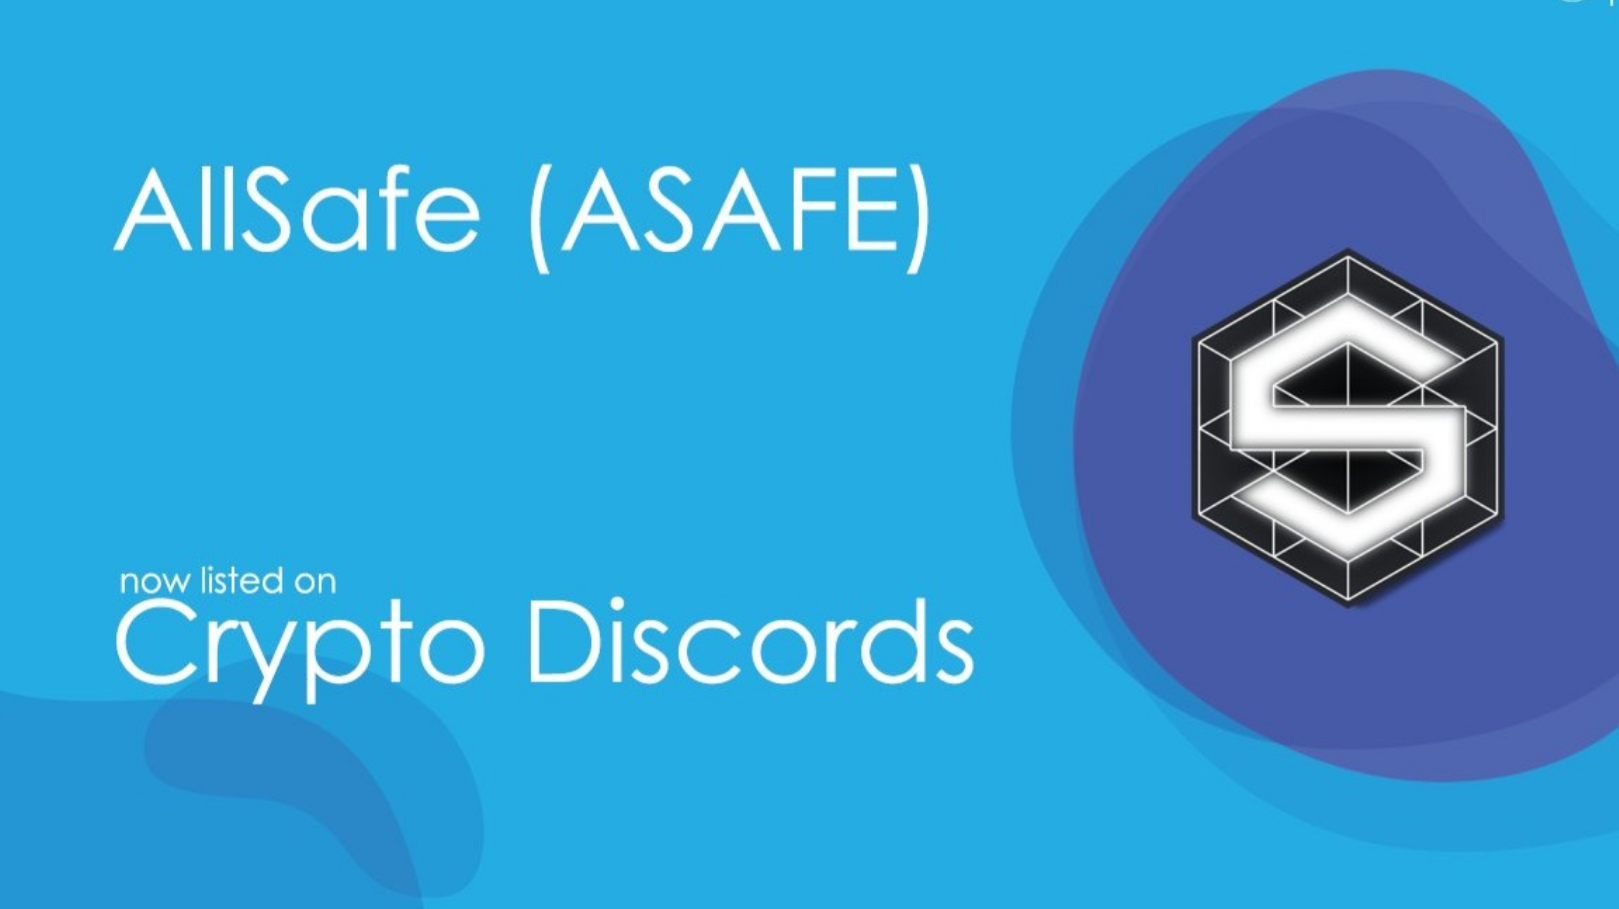 Allsafe Discords